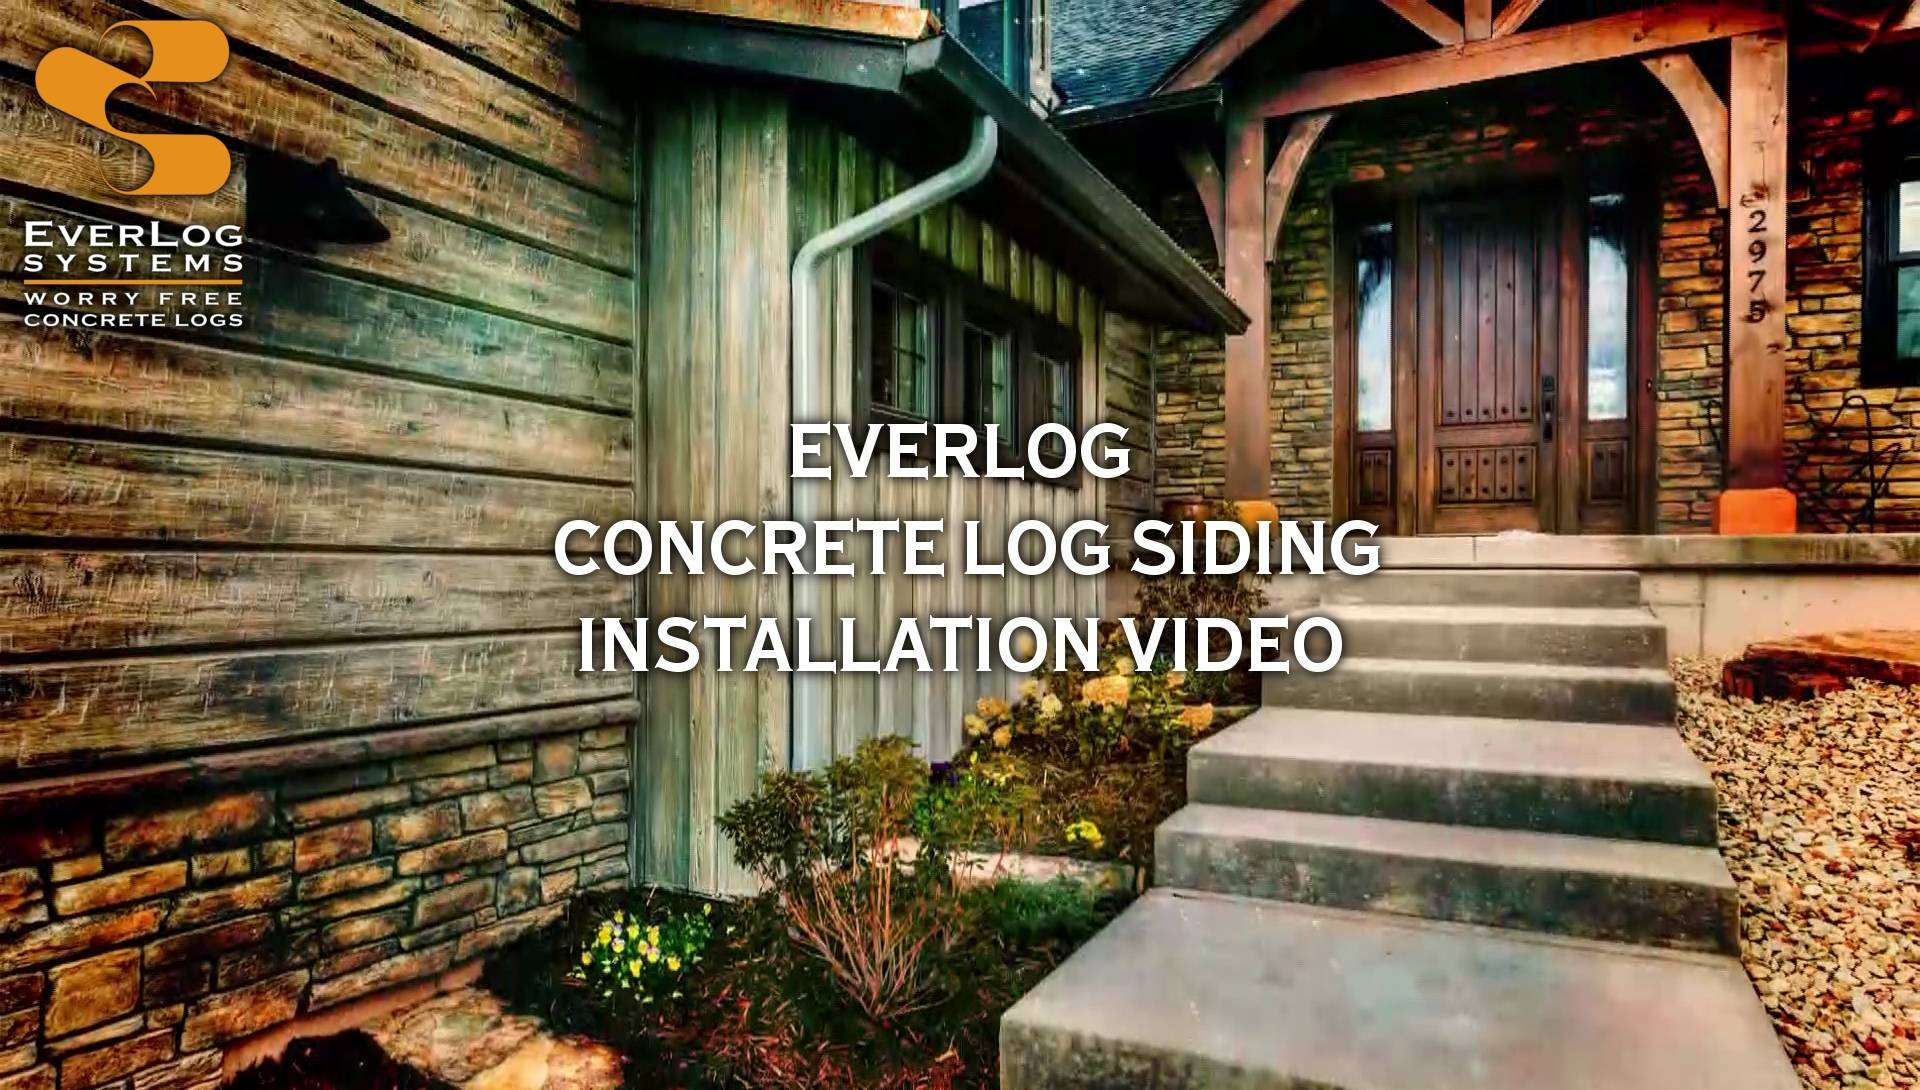 EverLog Concrete Log Siding Installation Video Thumbnail Image - made with Everlogs Concrete Logs, Siding, and Timbers